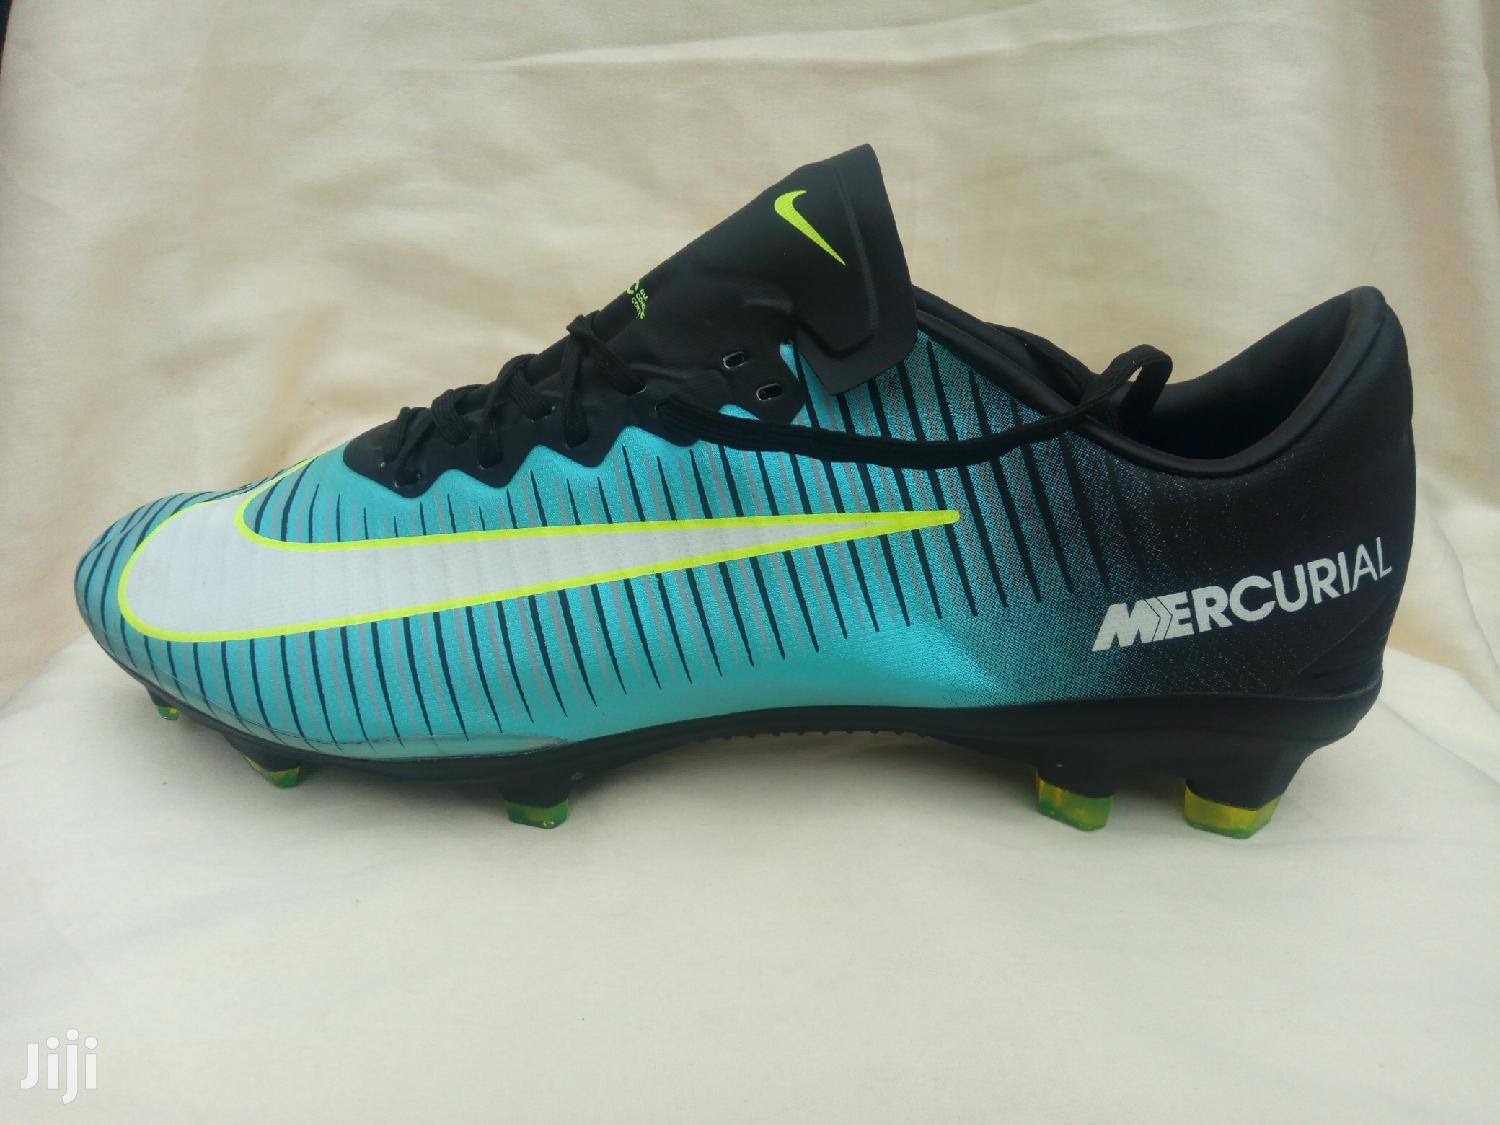 Football Boots | Shoes for sale in Ledzokuku-Krowor, Greater Accra, Ghana